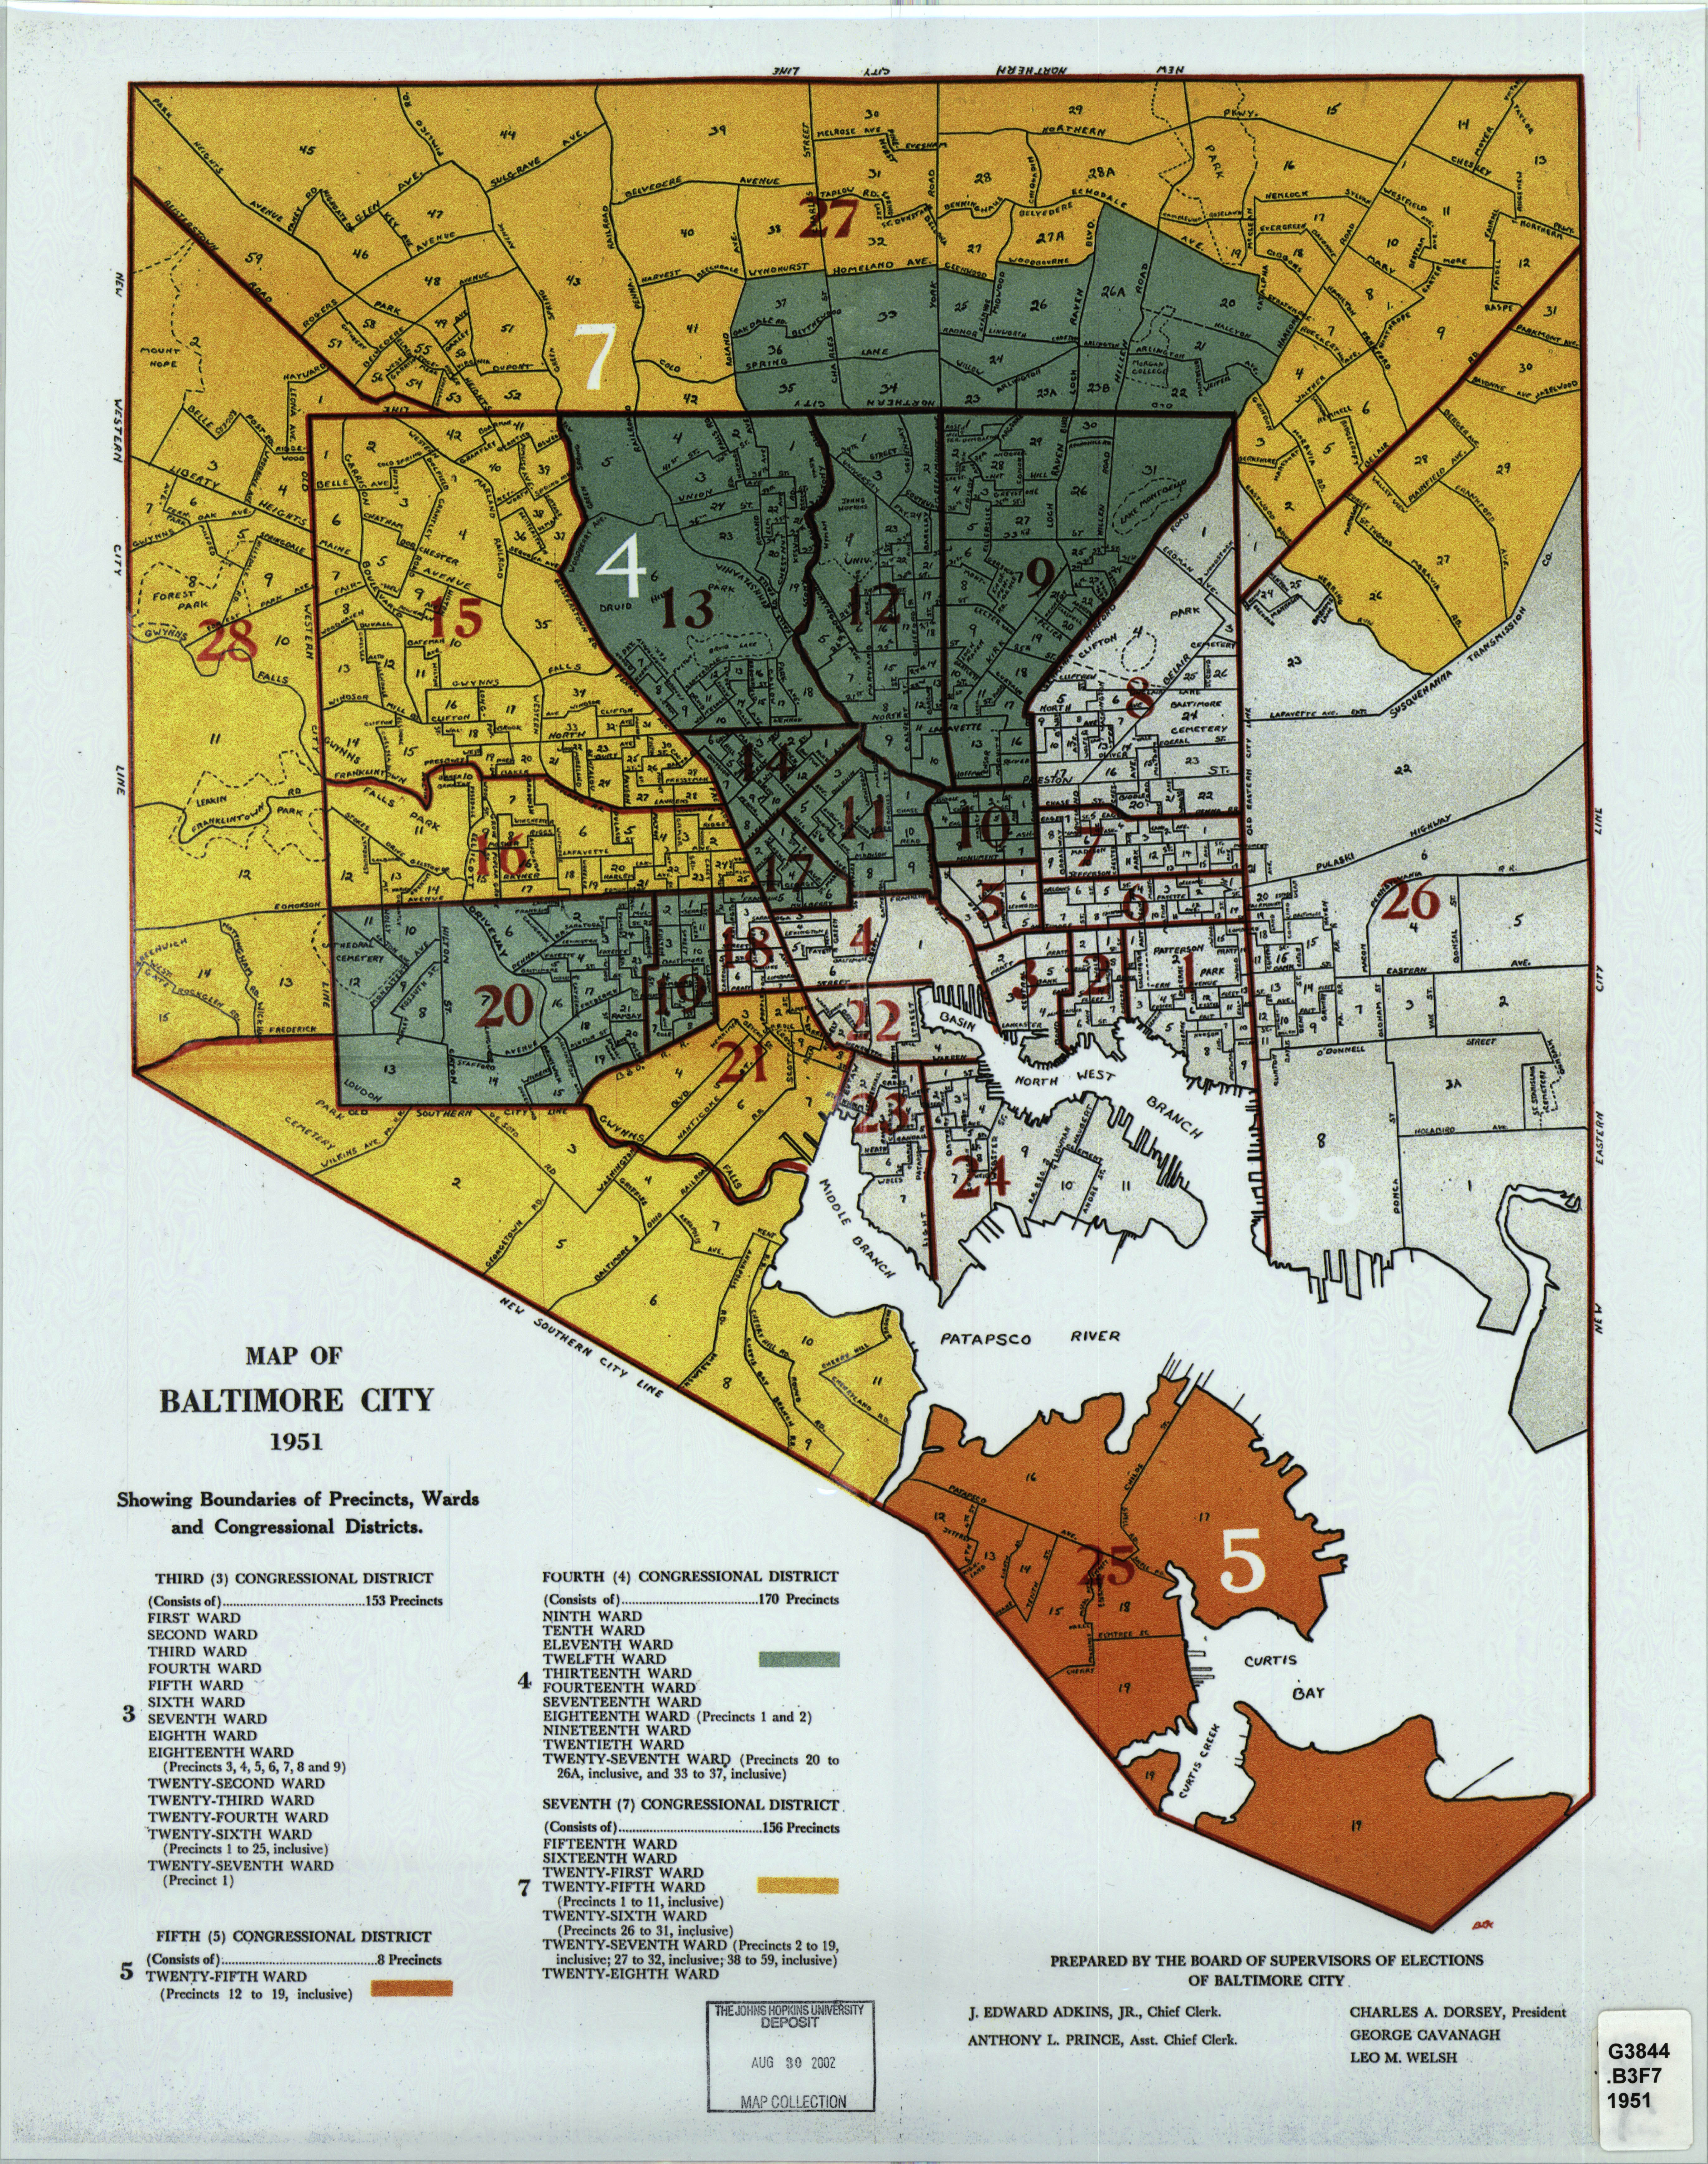 Map Of Baltimore City 1951 Showing Boundaries Of